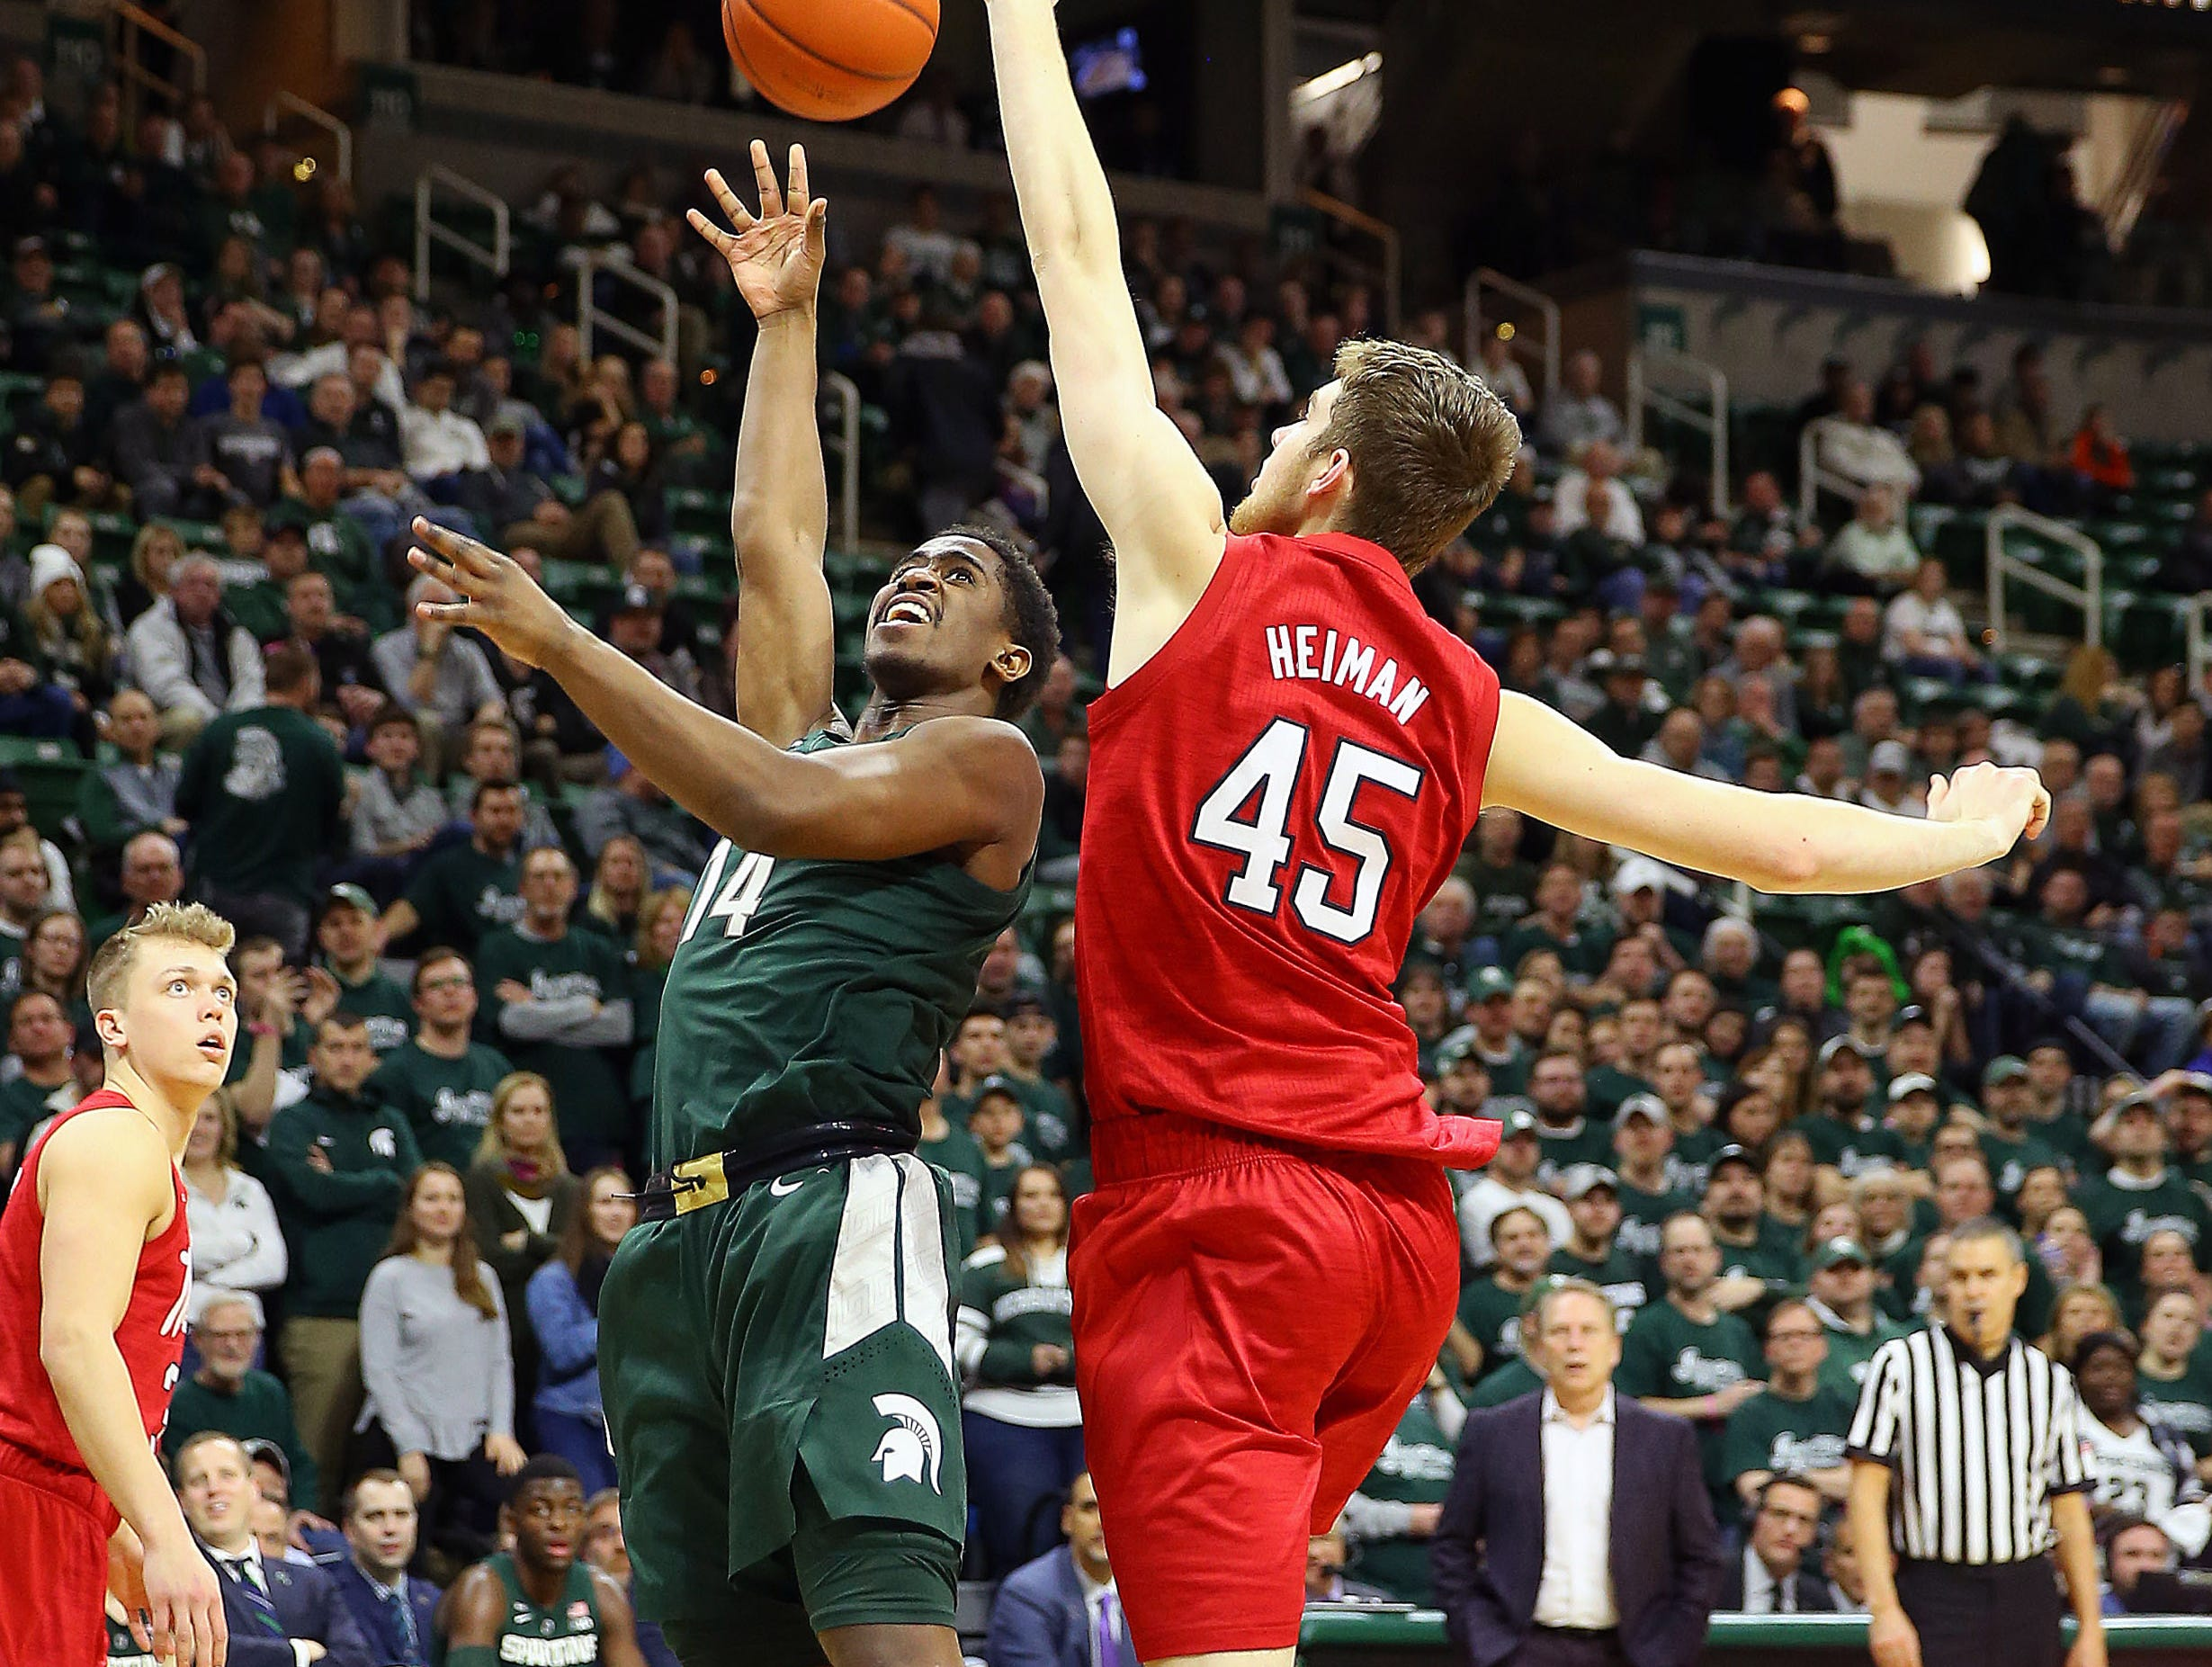 Mar 5, 2019; East Lansing, MI, USA; Michigan State Spartans guard Brock Washington (14) shoots the ball over Nebraska Cornhuskers forward Brady Heiman (45) during the second half at the Breslin Center. Mandatory Credit: Mike Carter-USA TODAY Sports